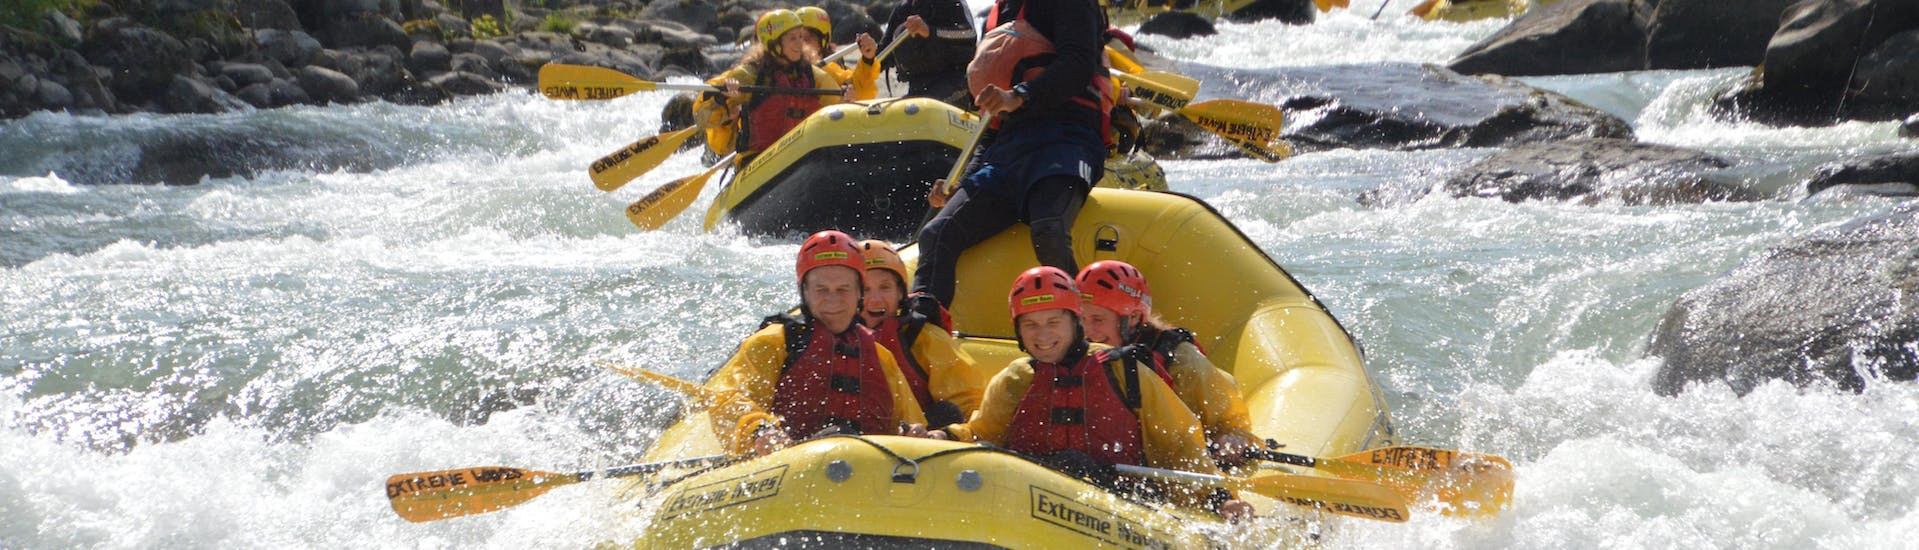 rafting-on-the-noce-classic-extreme-waves-hero